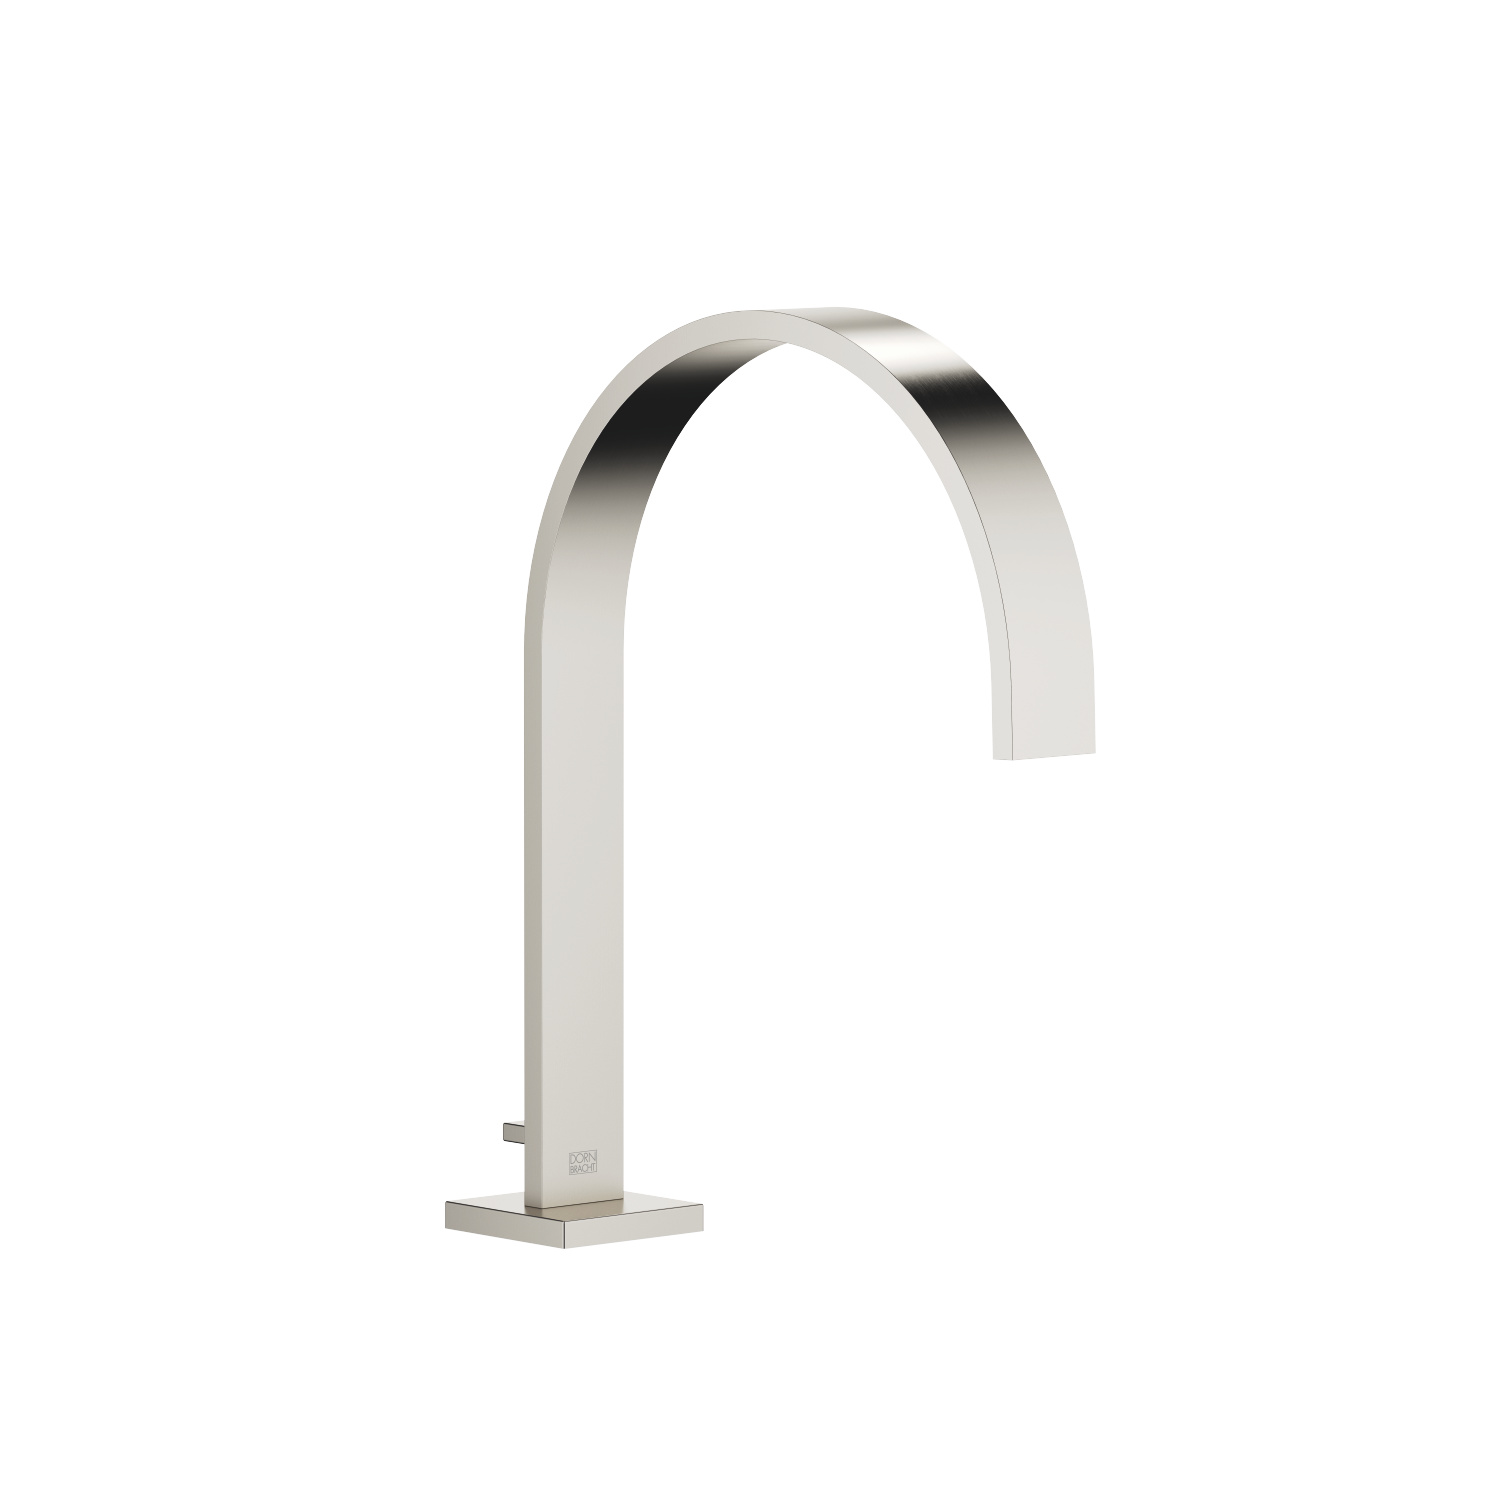 Tub spout with diverter for deck-mounted installation - platinum matte